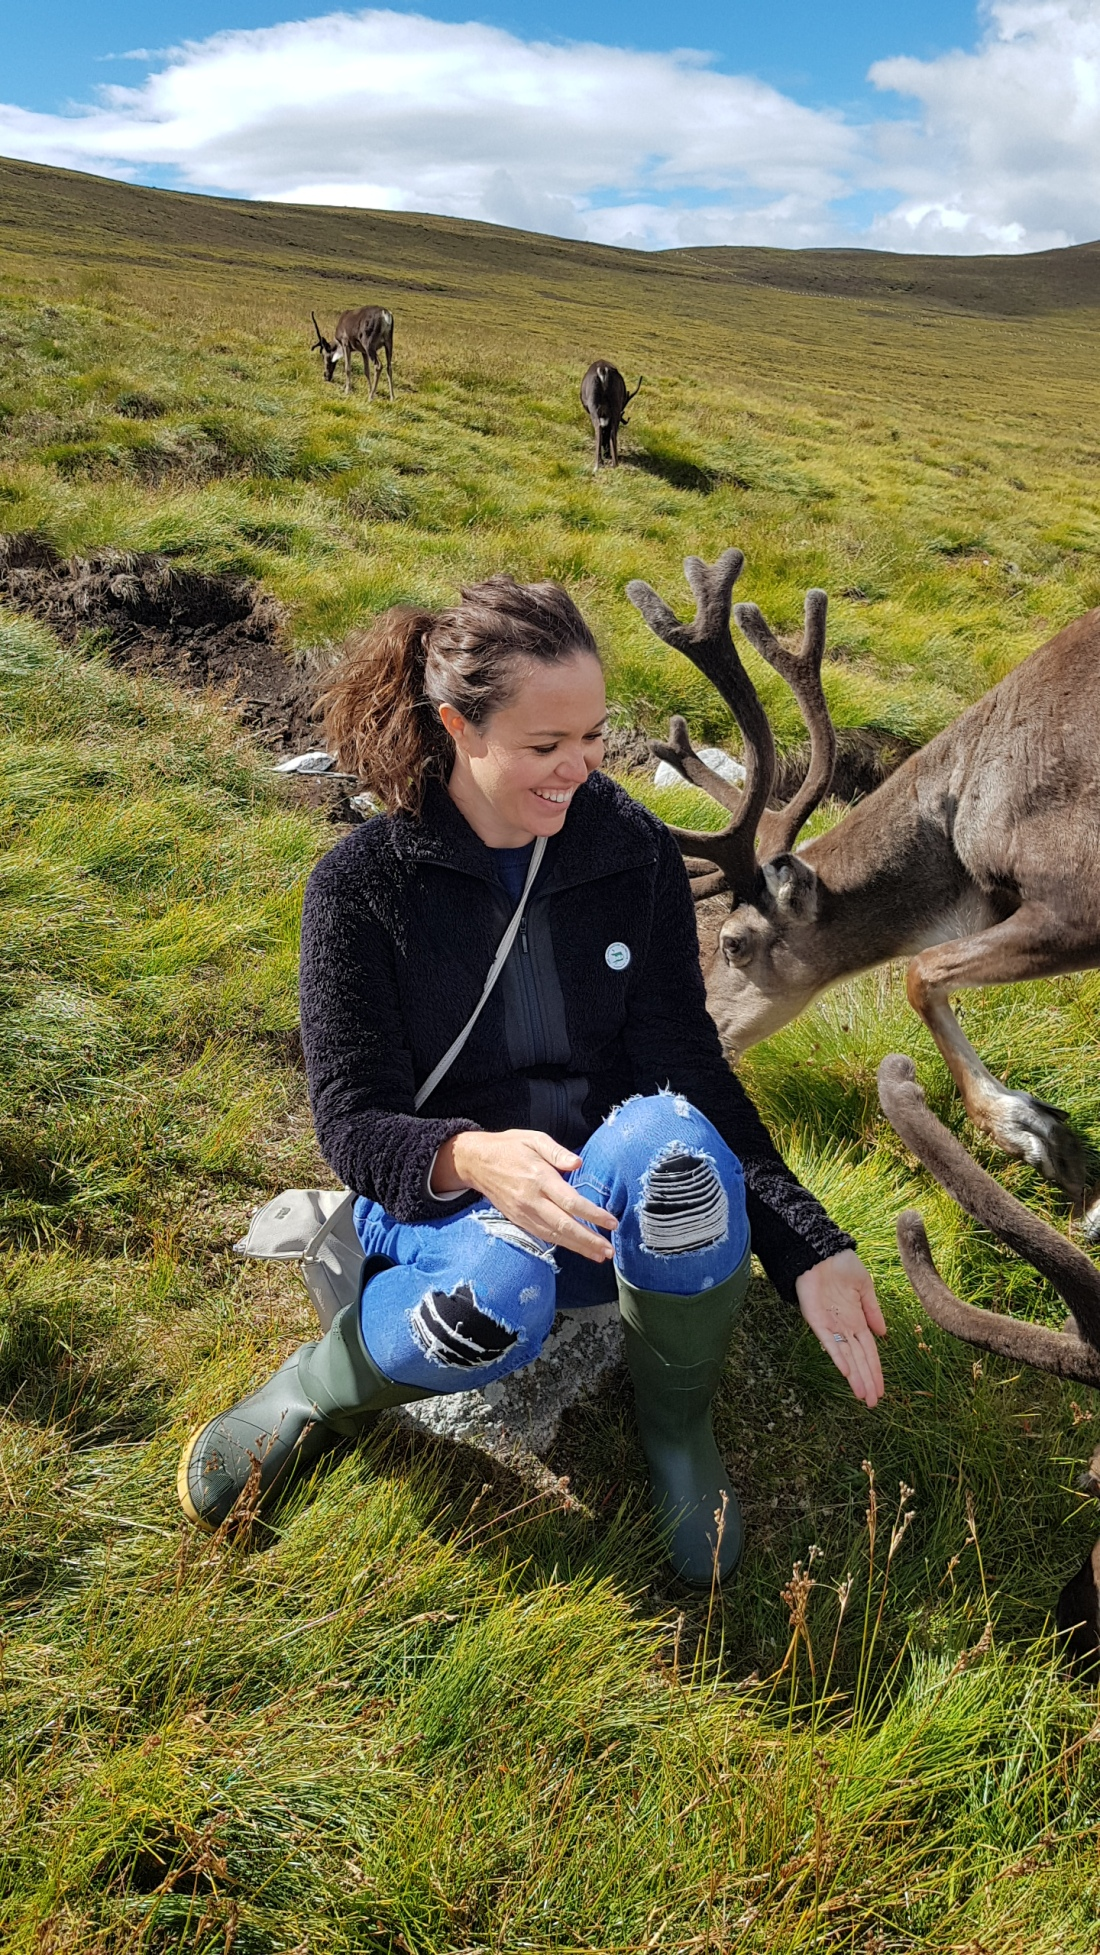 Brie feeding Reindeer In The Cairngorms Scottish Highlands